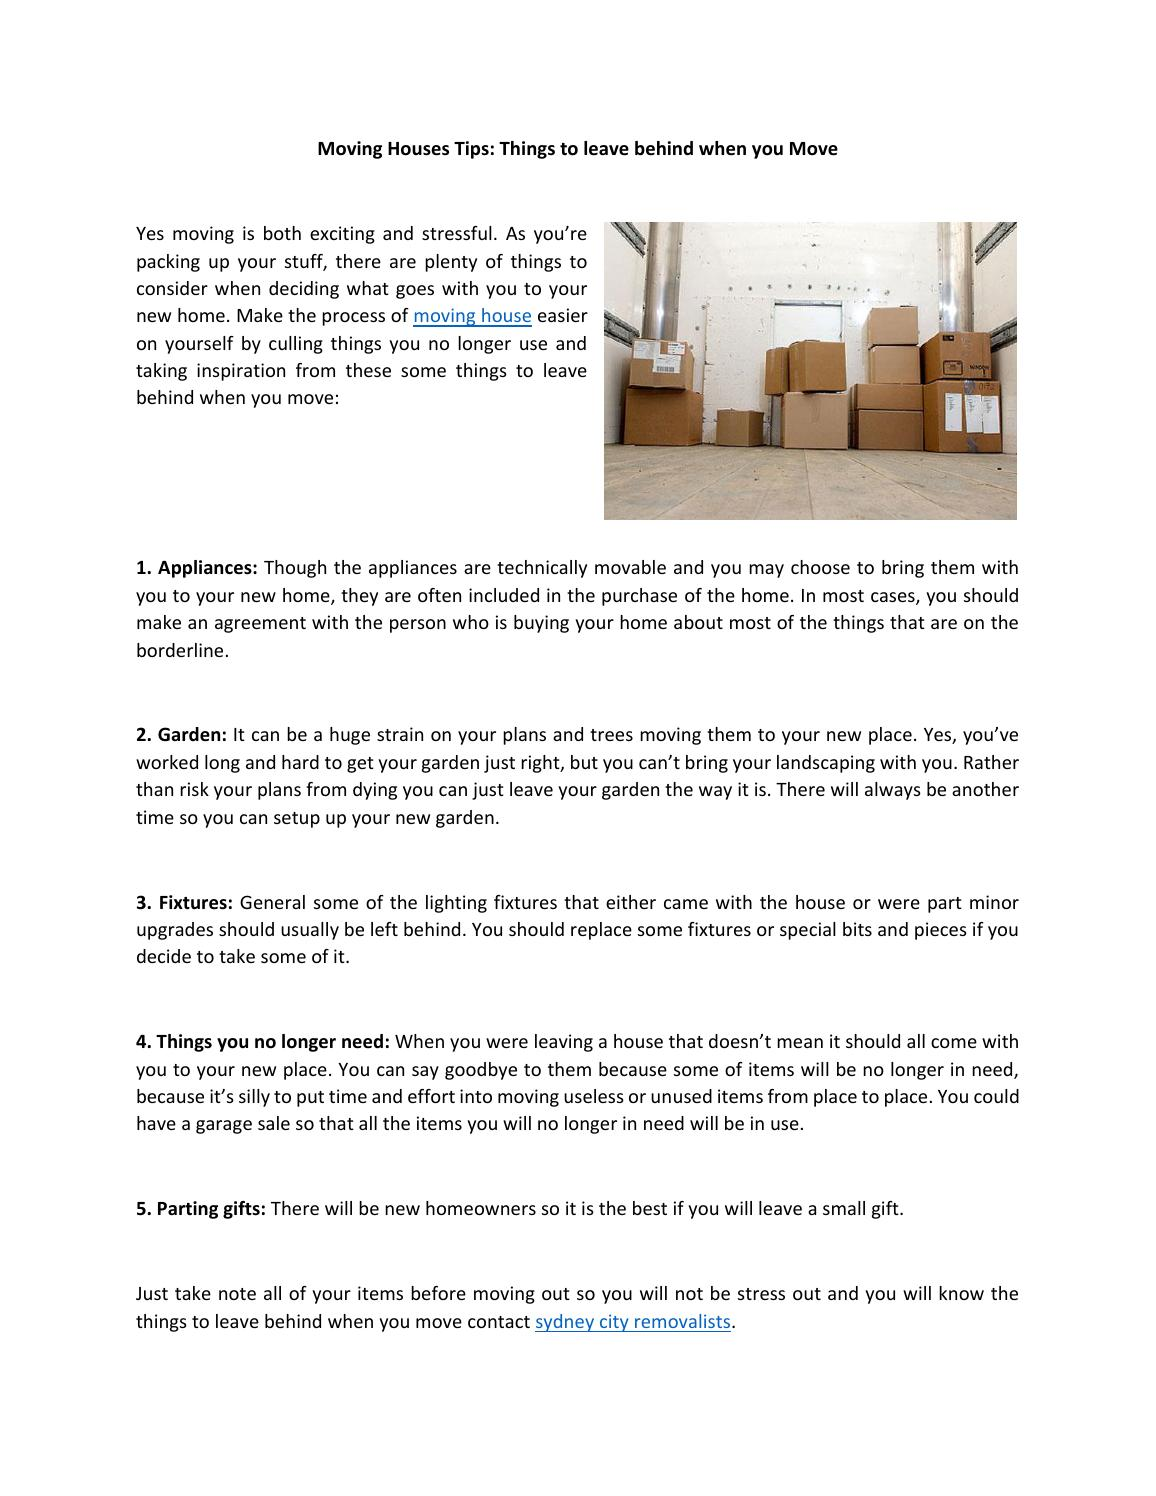 Moving Houses Tips Things To Leave Behind When You Move By Alex Issuu,Late Summer Blooming Perennials Ontario